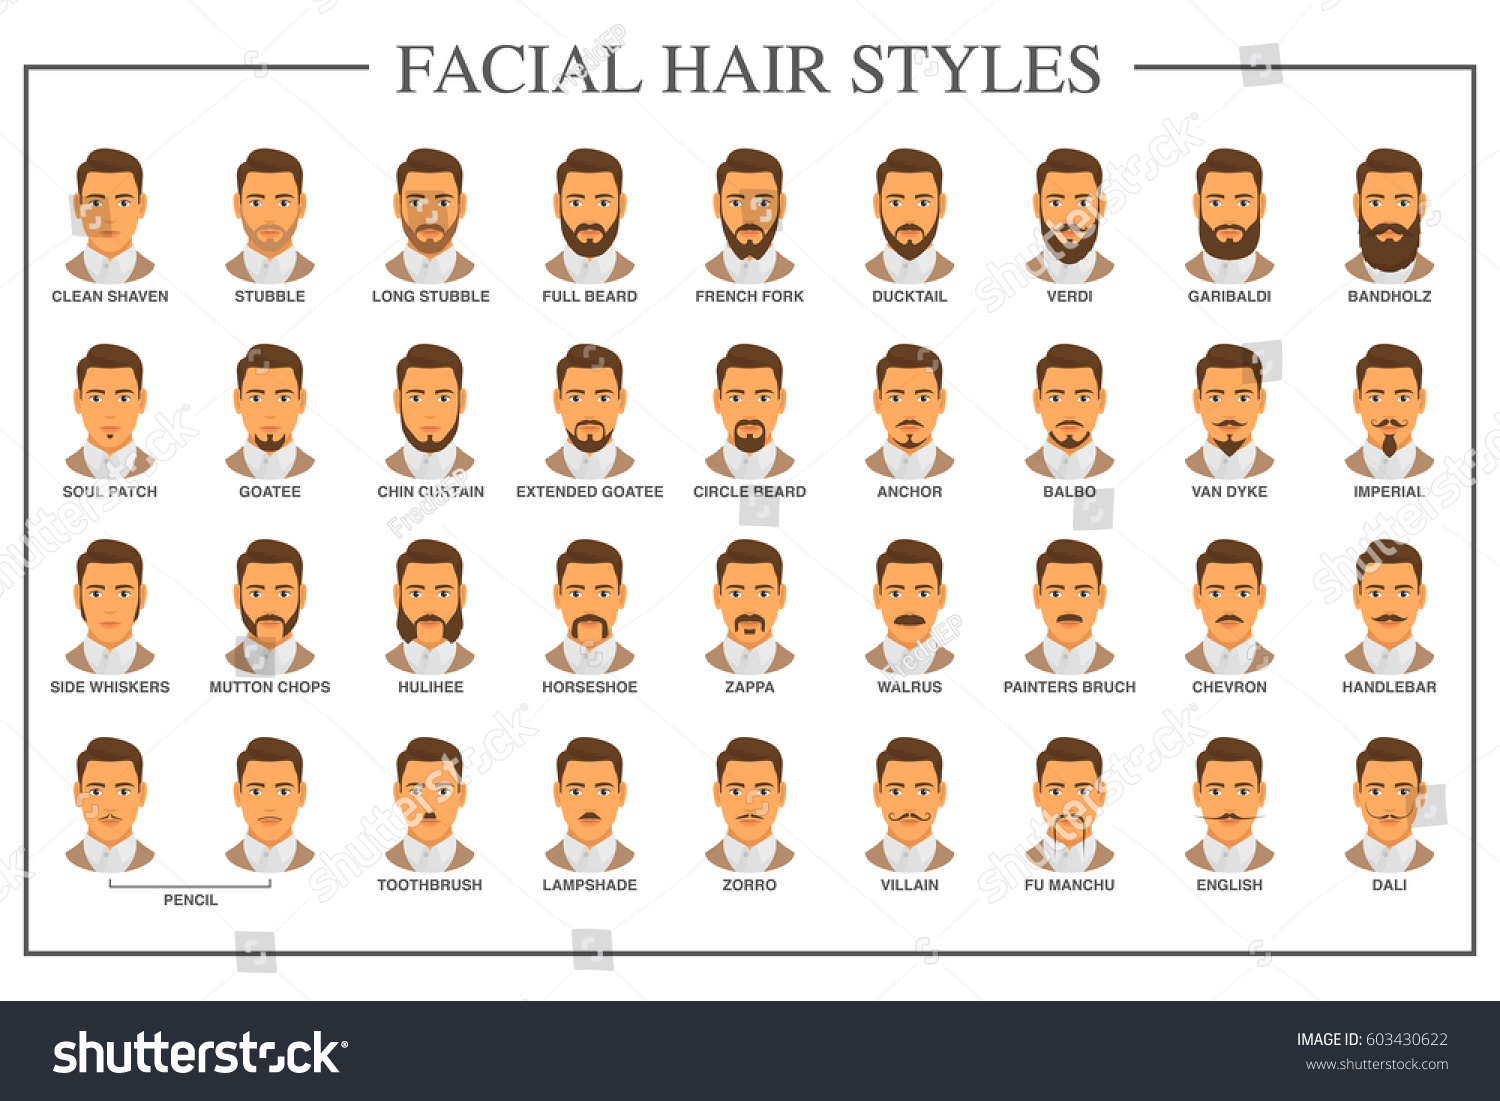 Beard Style Guide Facial Hair Types Stock Photo (Photo, Vector ...